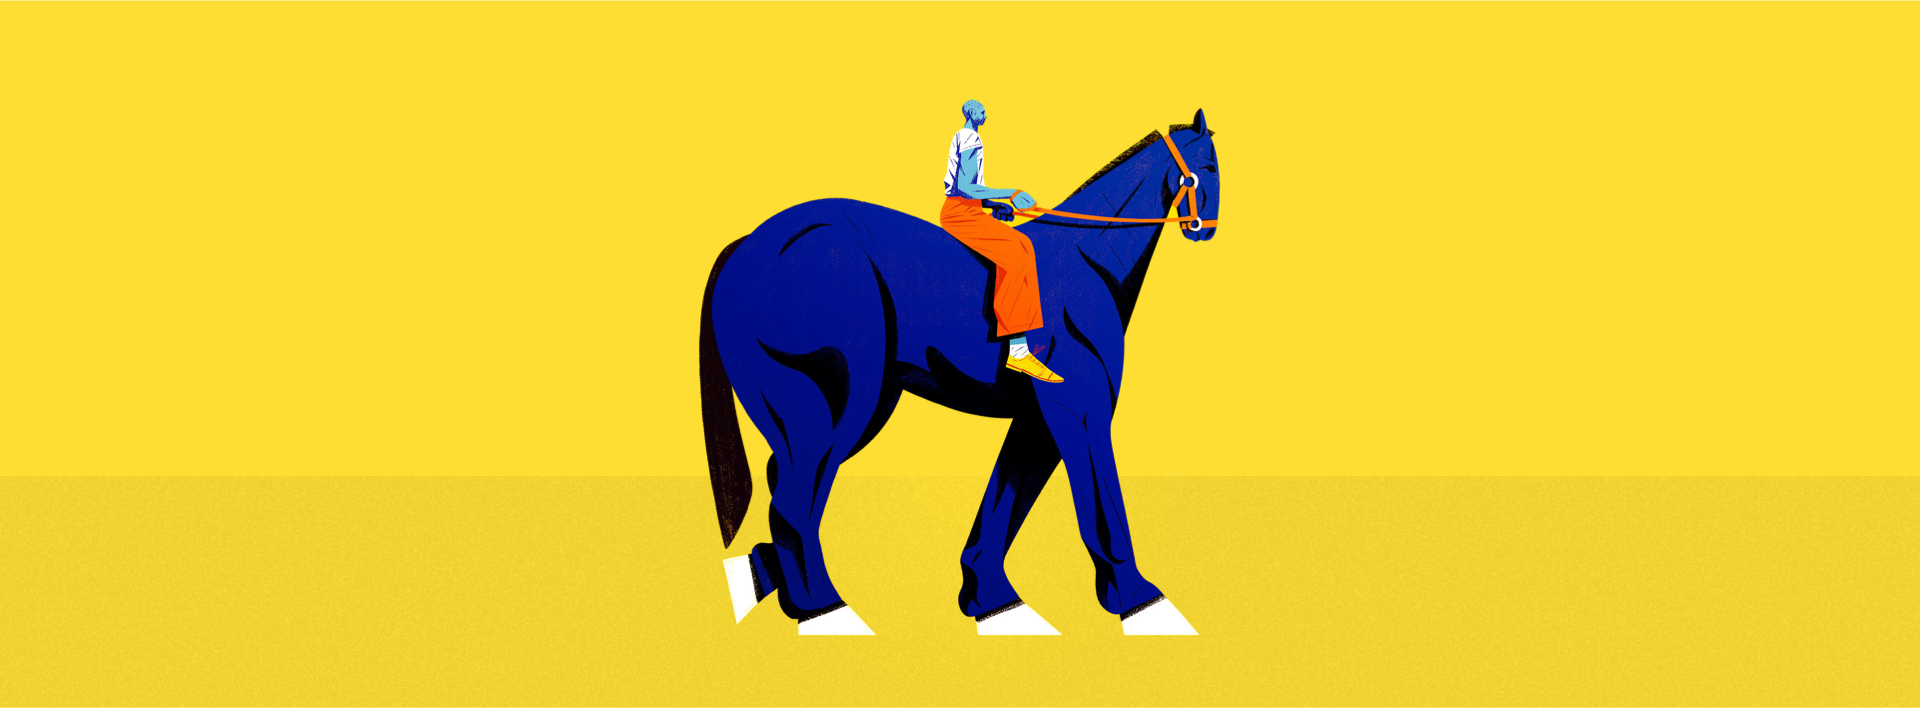 Banner image—illustration of light blue person with orange trousers, sitting over a blue horse and plane yellow background